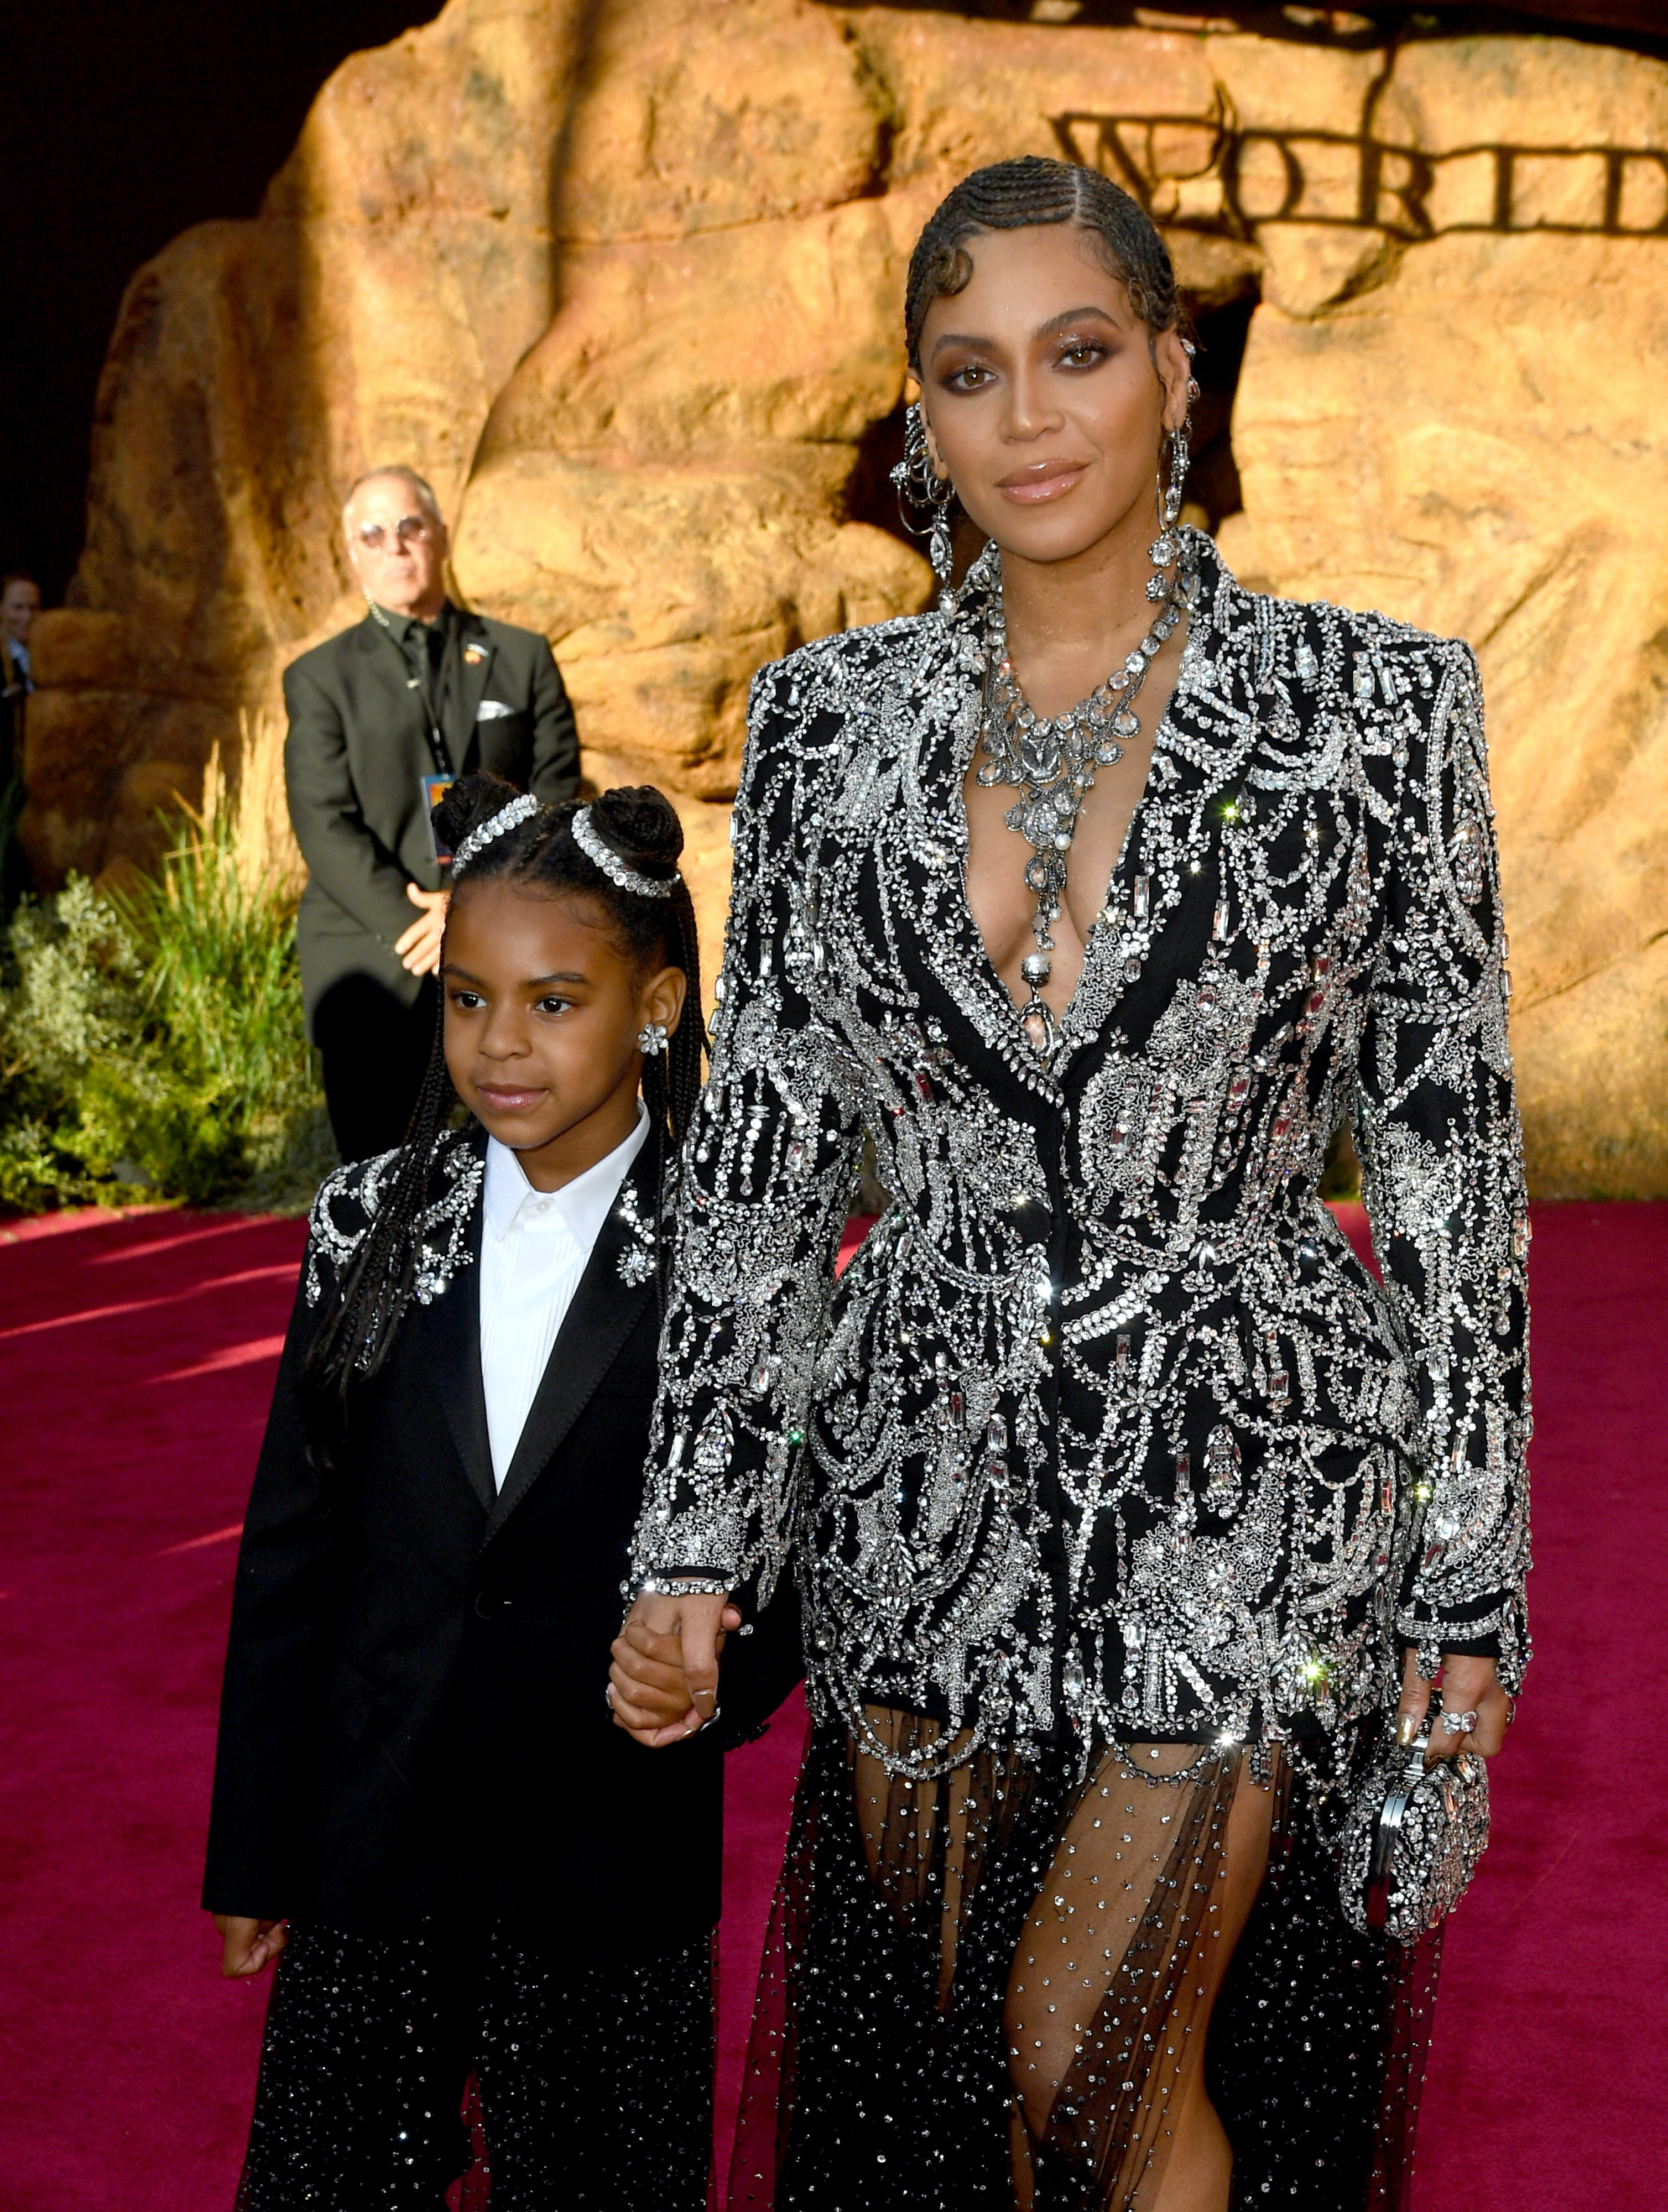 7814ec5ab Beyonce & Blue Ivy Attended The 'Lion King' Premiere In Matching Sparkly  Outfits